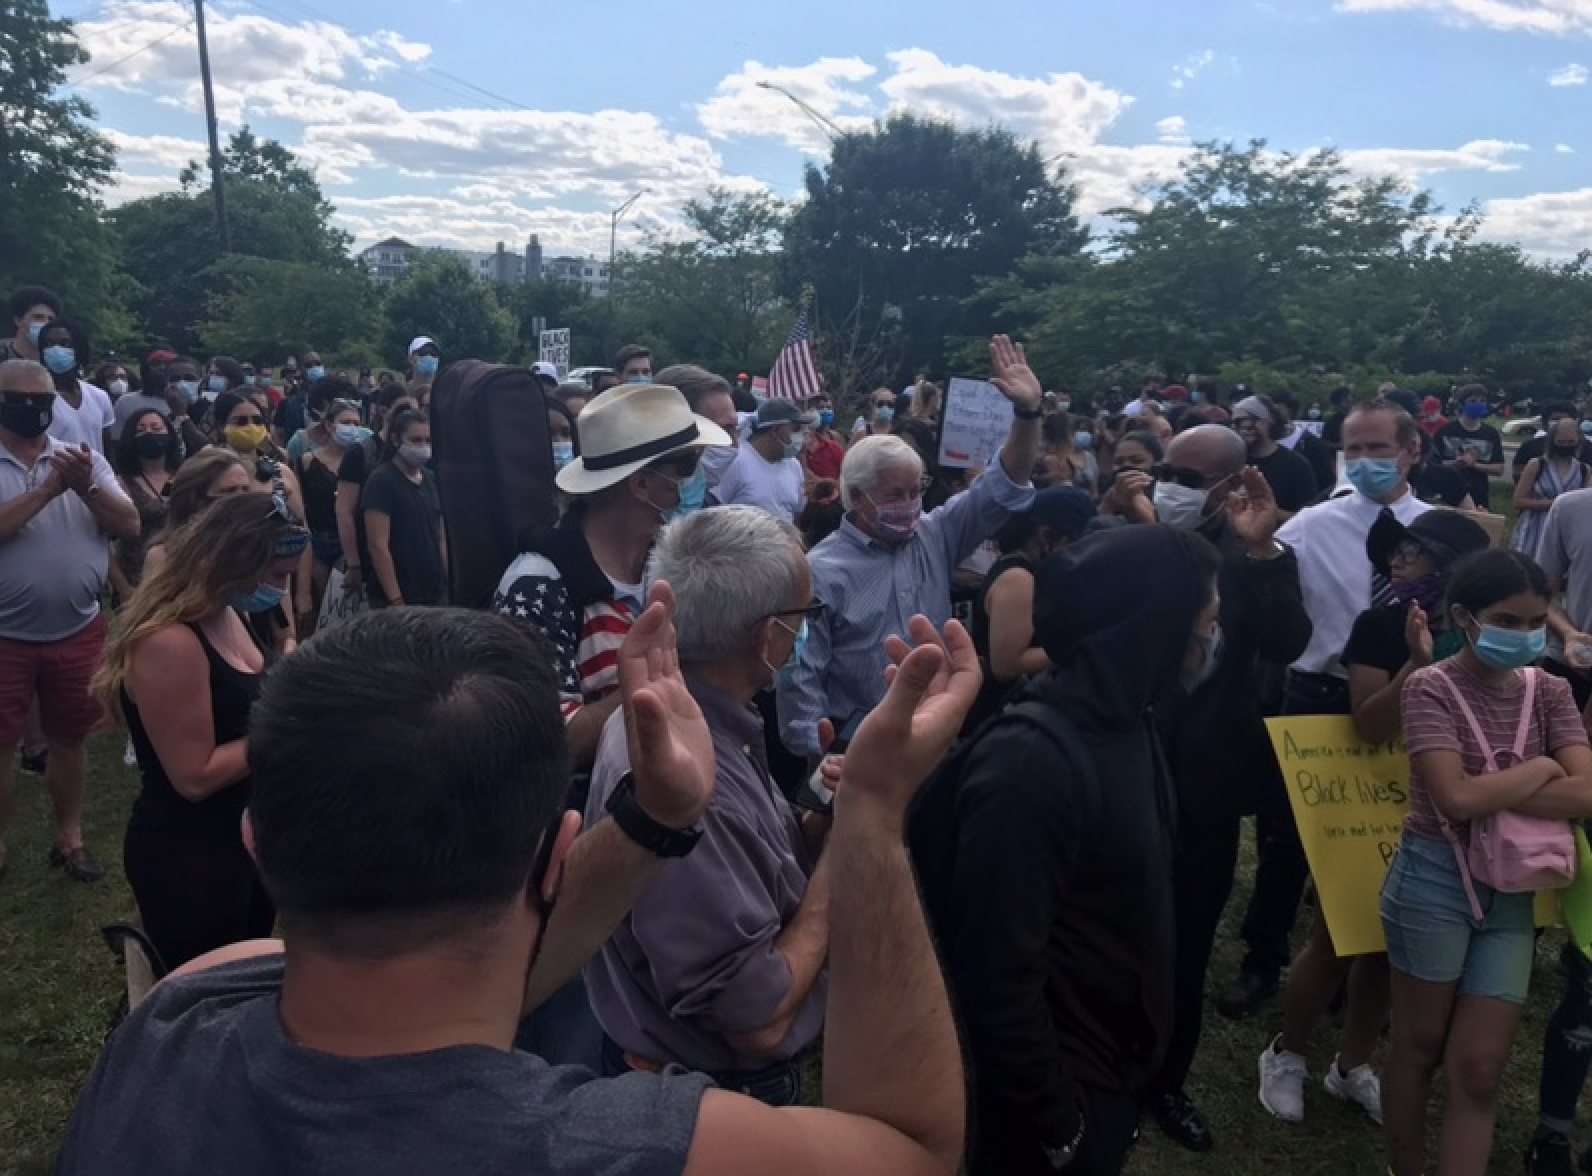 Assemblymember Lavine marches at the Black Lives Matter March in Glen Cove.